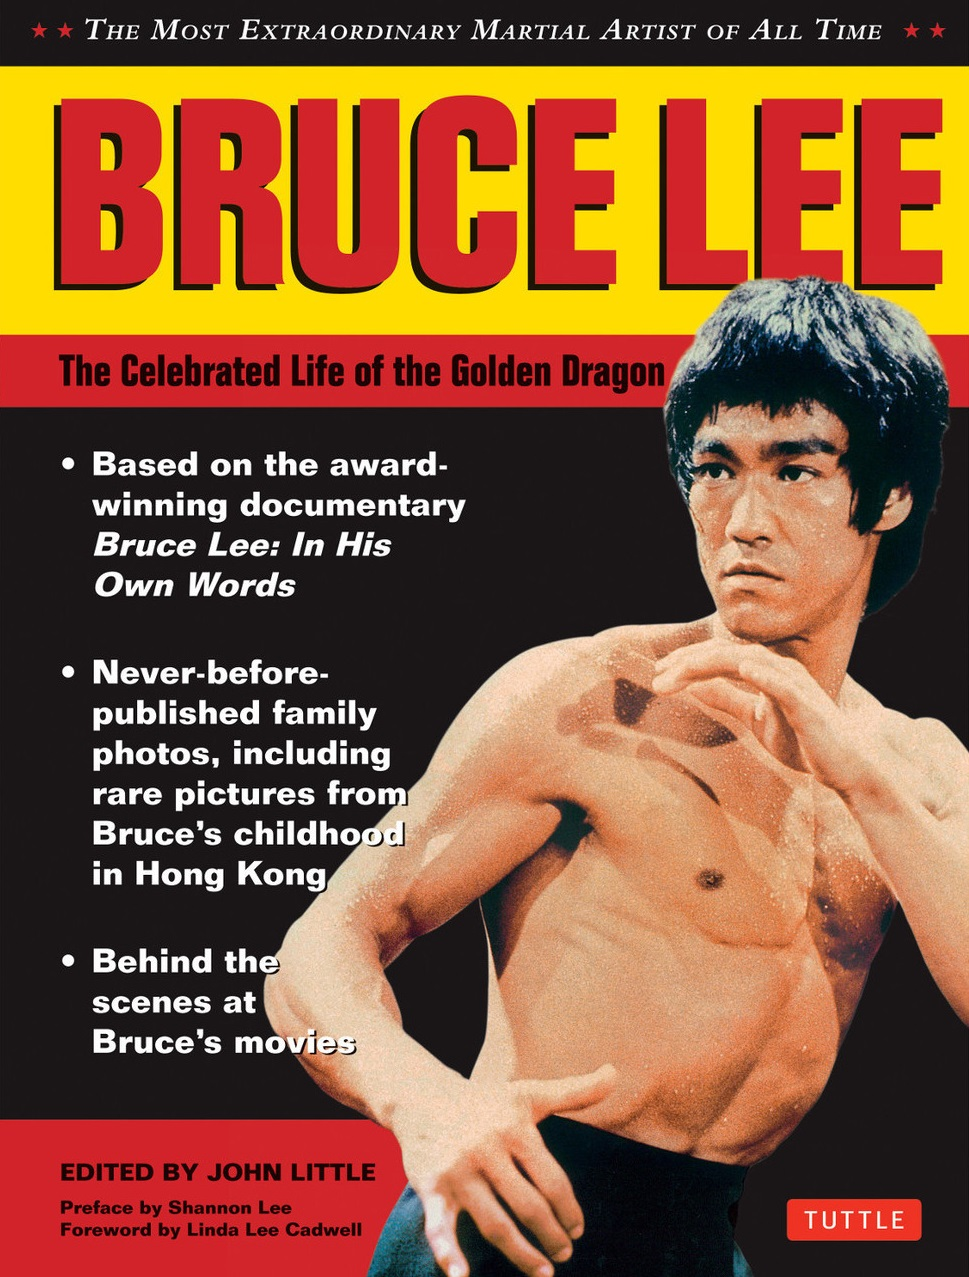 bruce lee golden dragon book cover